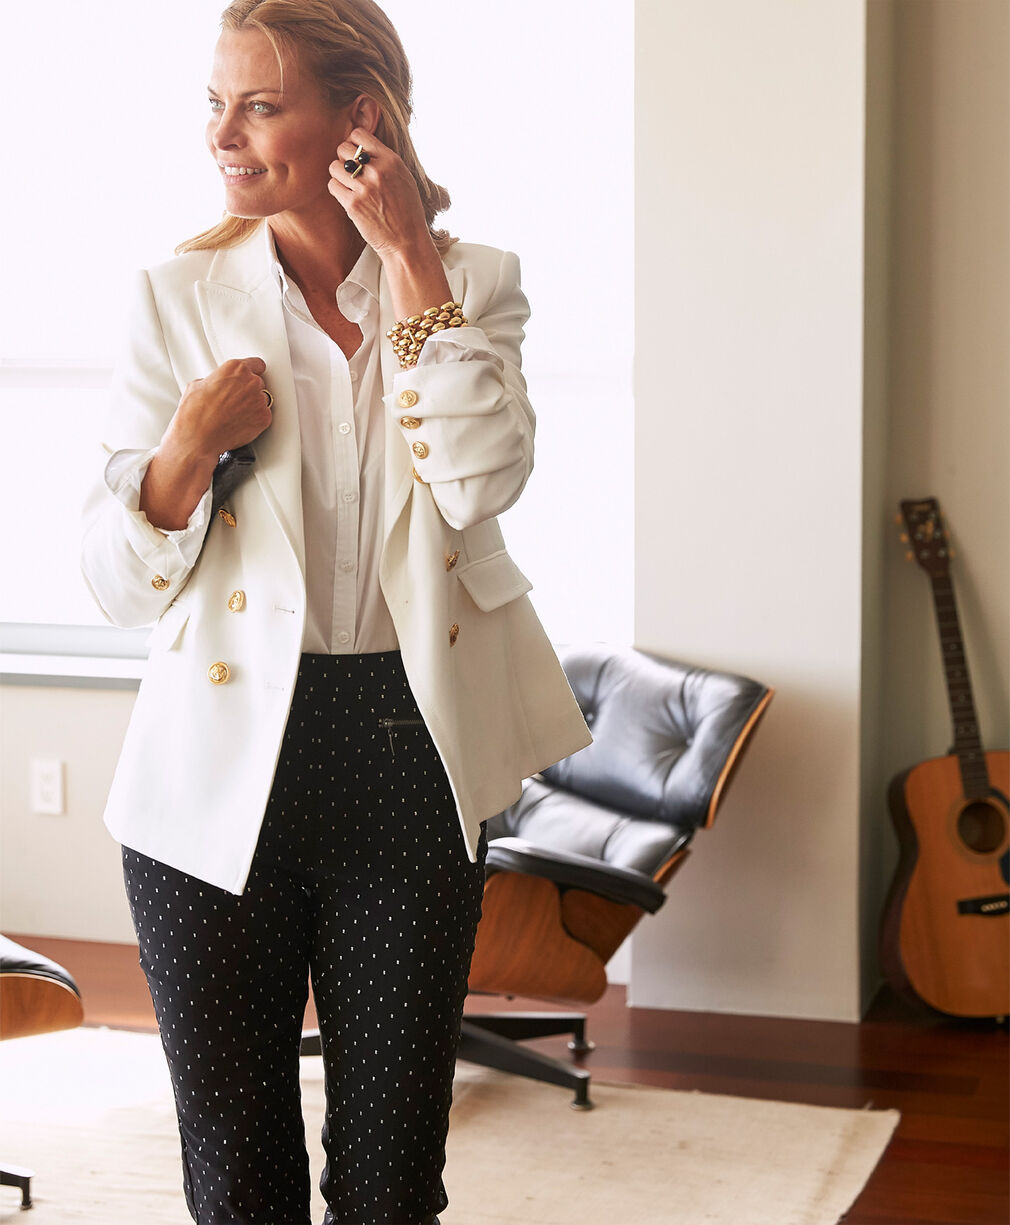 The Friday Blazer | Friday Blazer | Super Stretchy Jacquard Pull-on Trousers | By Cotton Traders